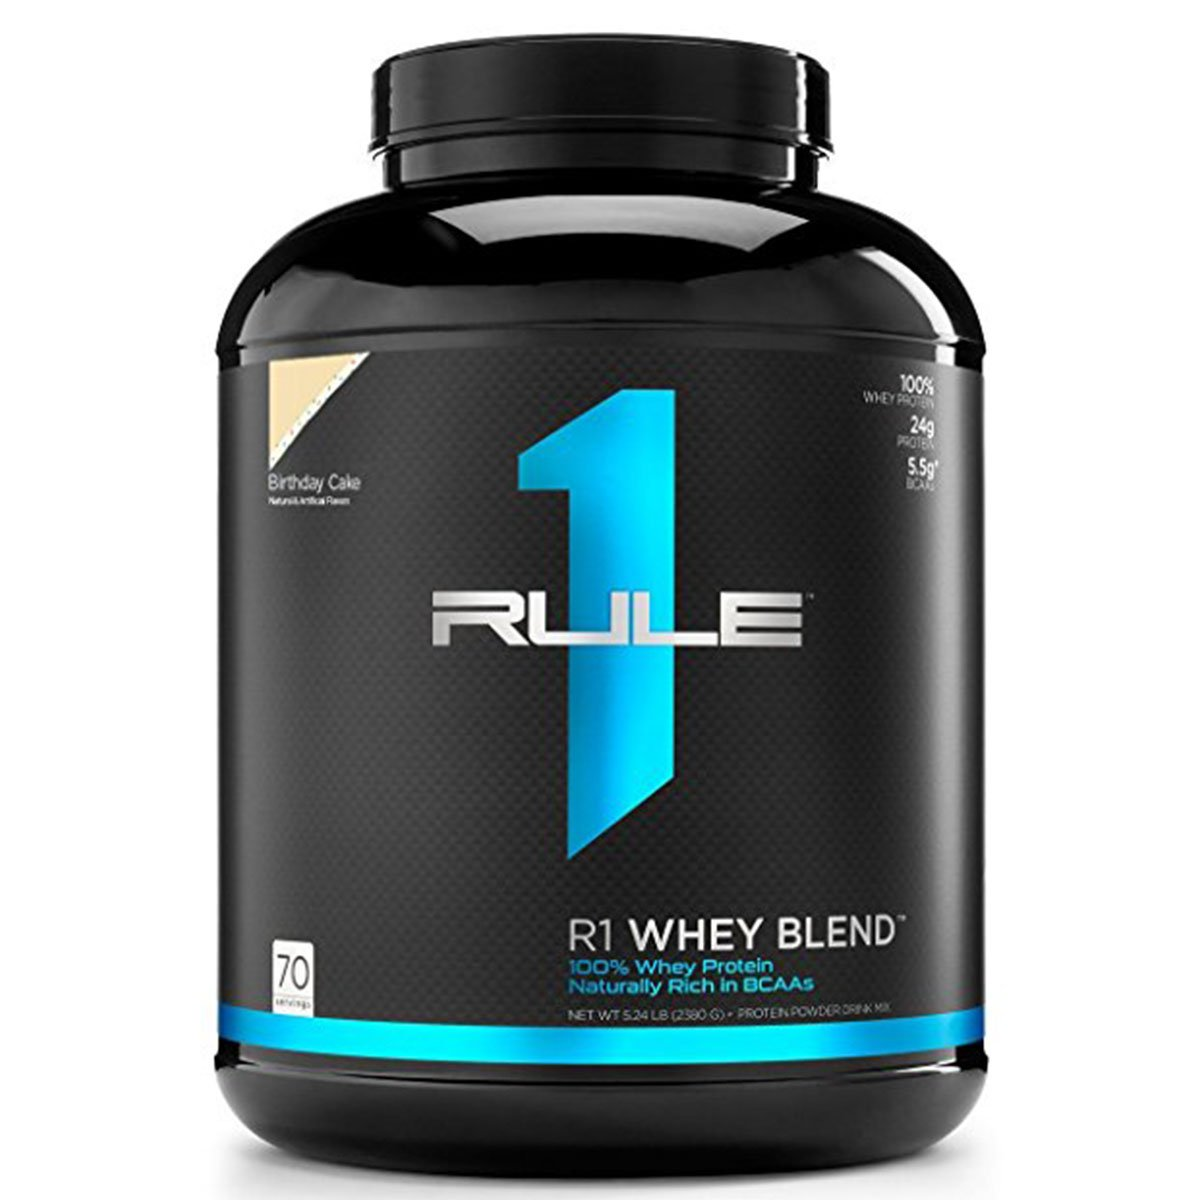 RuleOneProteins R1 Whey Blend Protein Birthday Cake